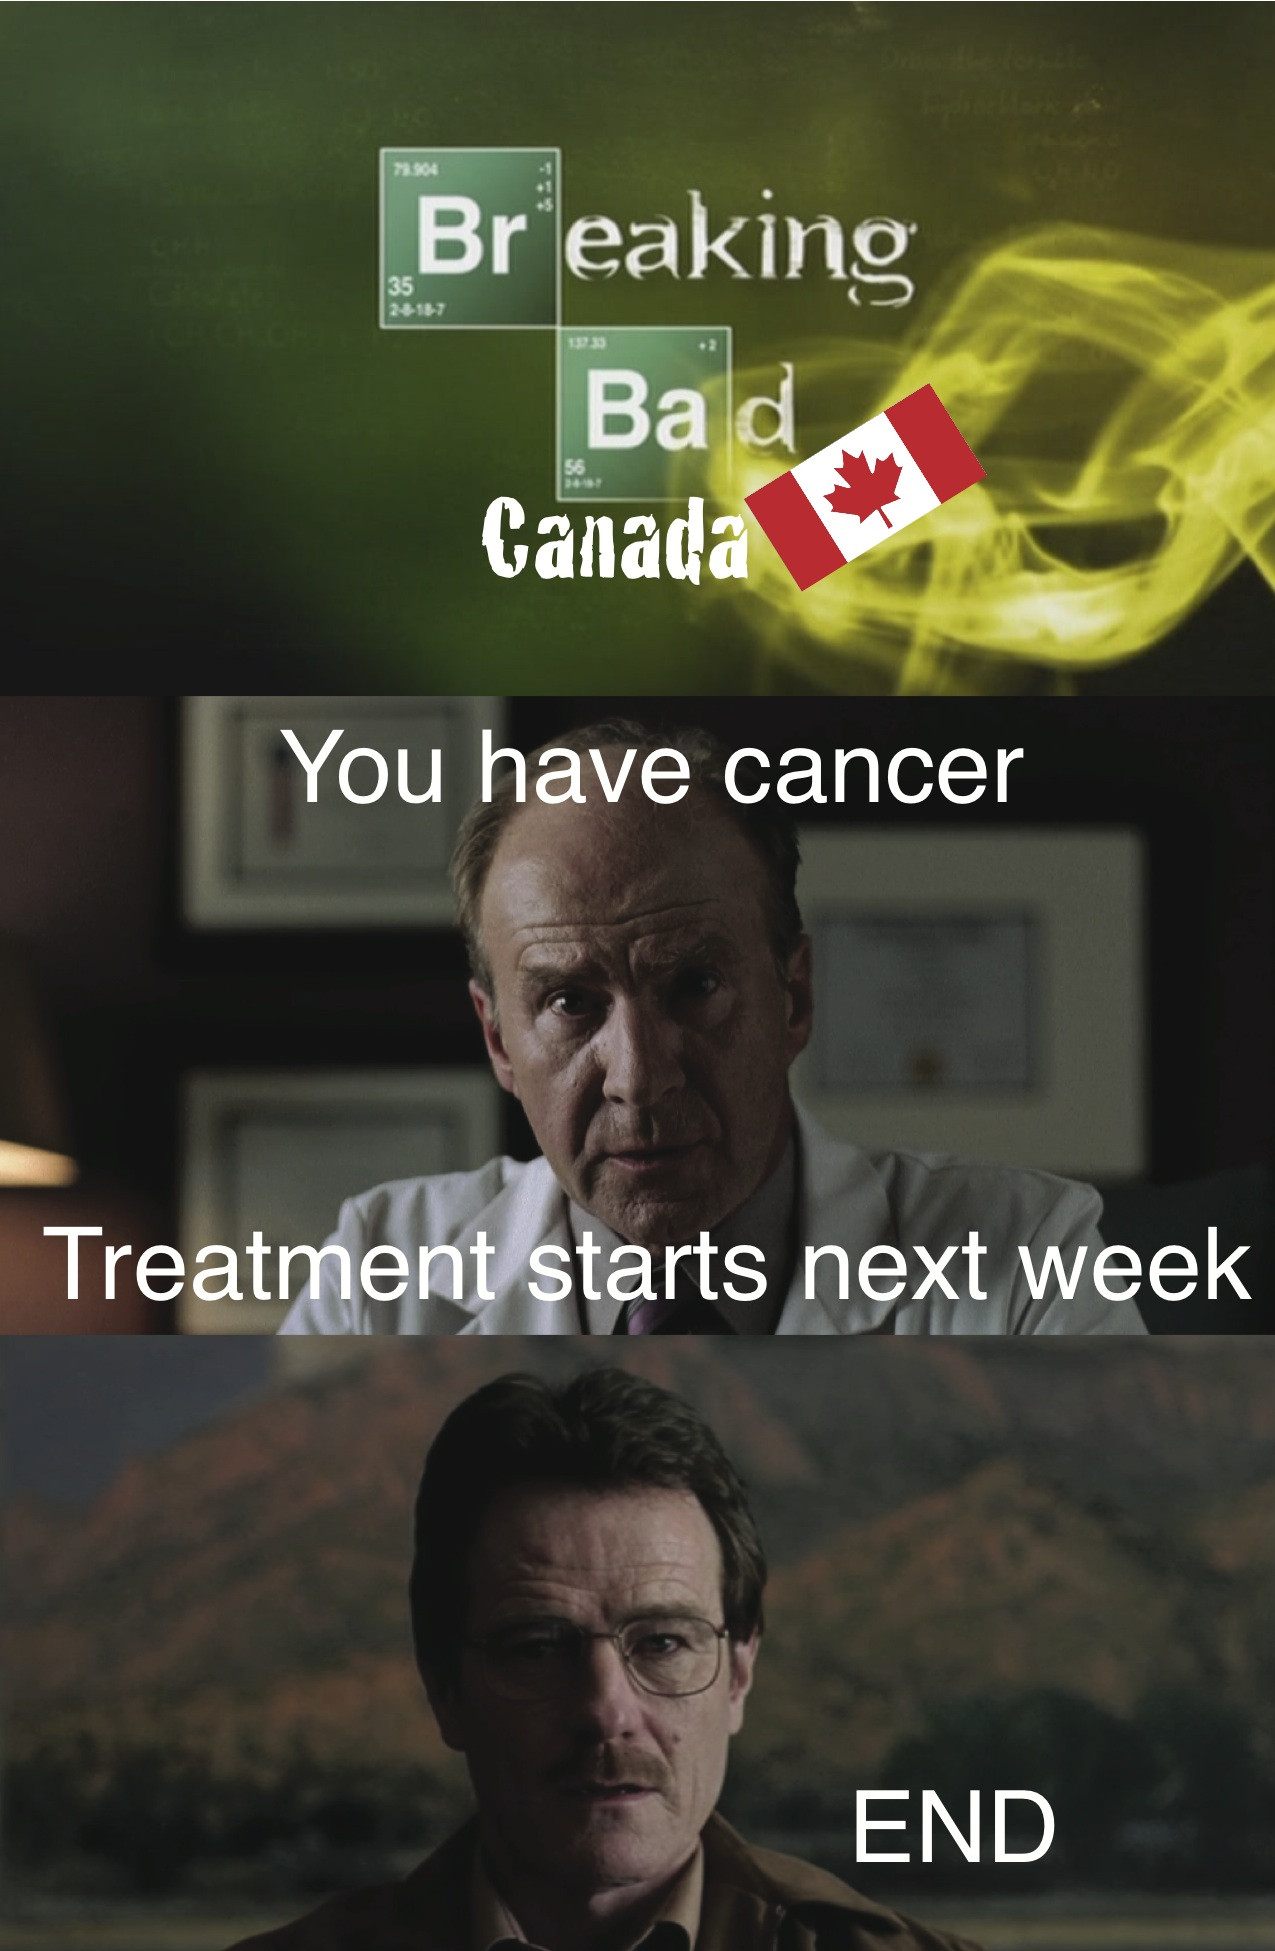 breaking-bad-canada